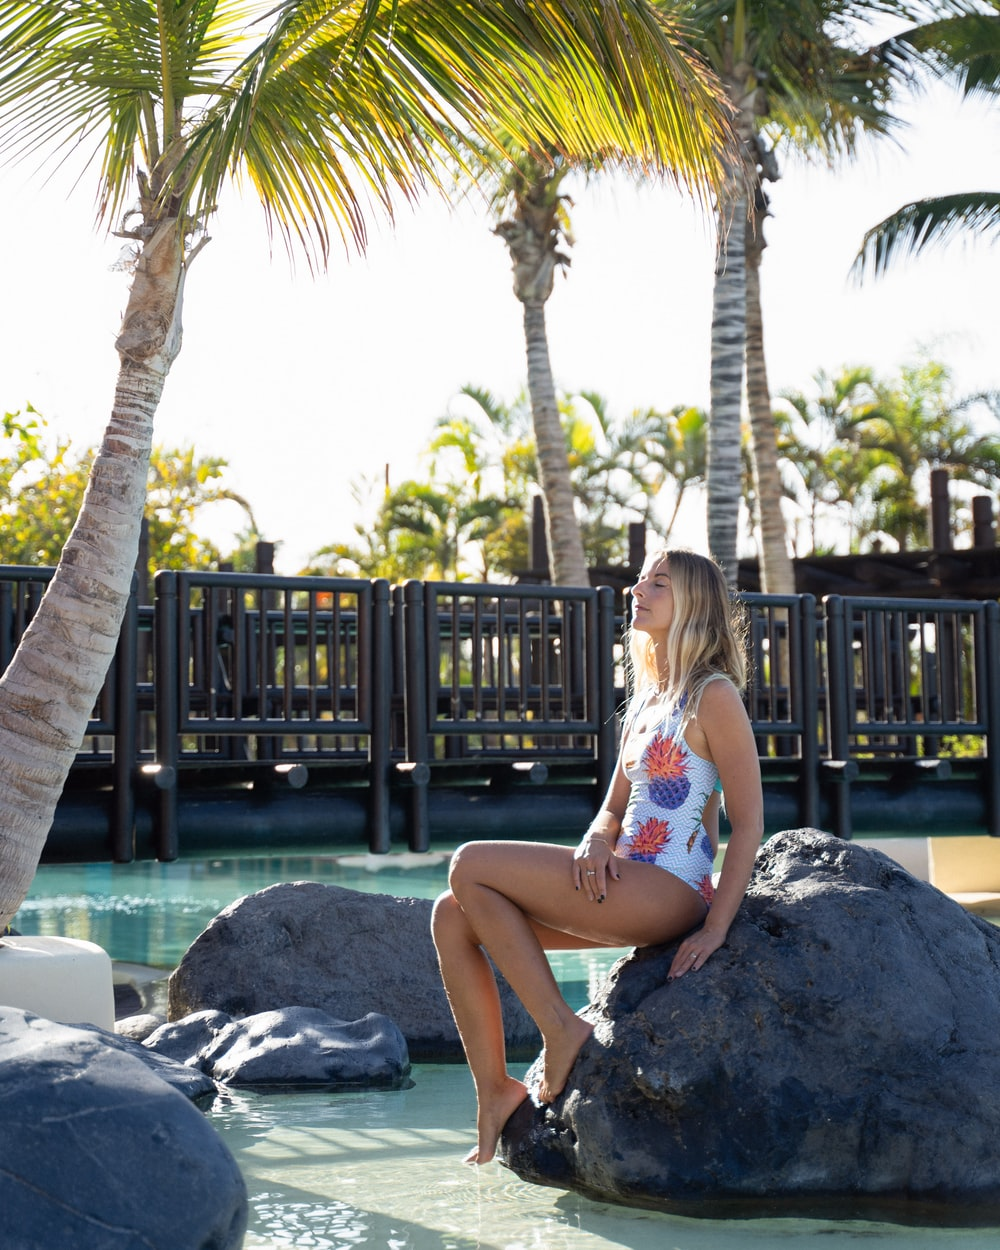 woman in white and pink floral bikini sitting on rock near palm tree during daytime